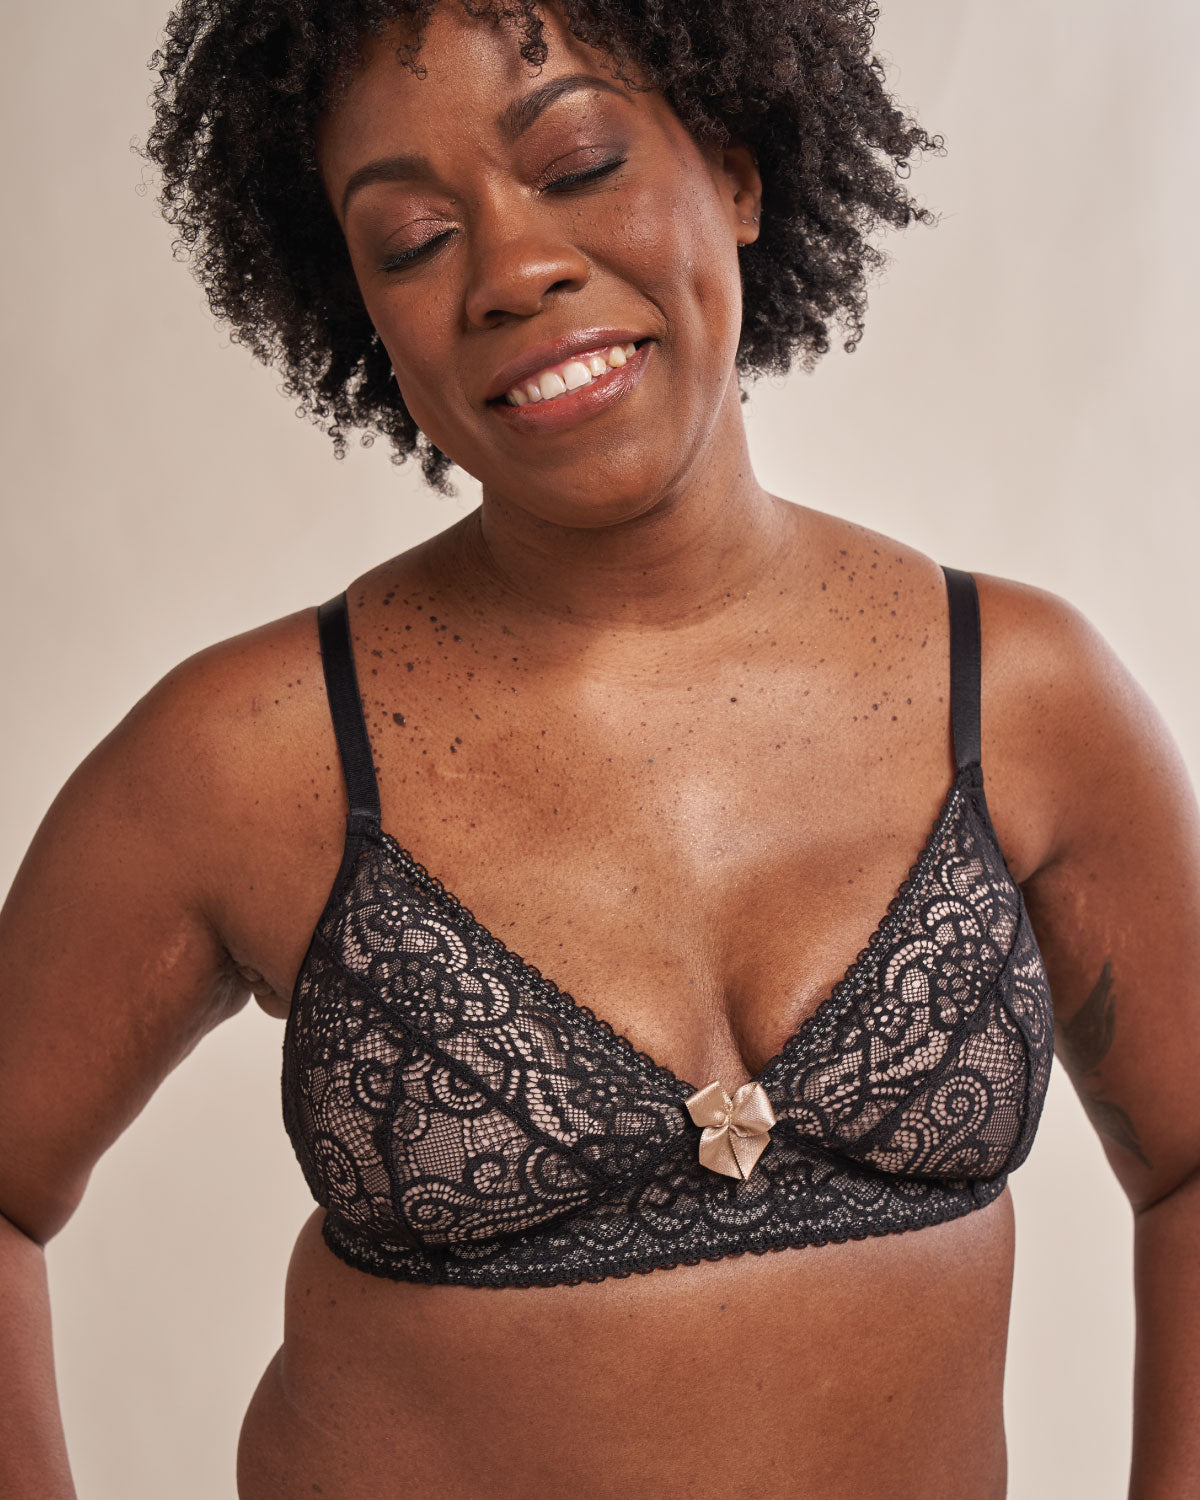 Black, pocketed spandex stretch lace bra with fully lined mesh cups, delicate seams, satin bow, back hook closure and adjustable straps, on a flap reconstructed model.